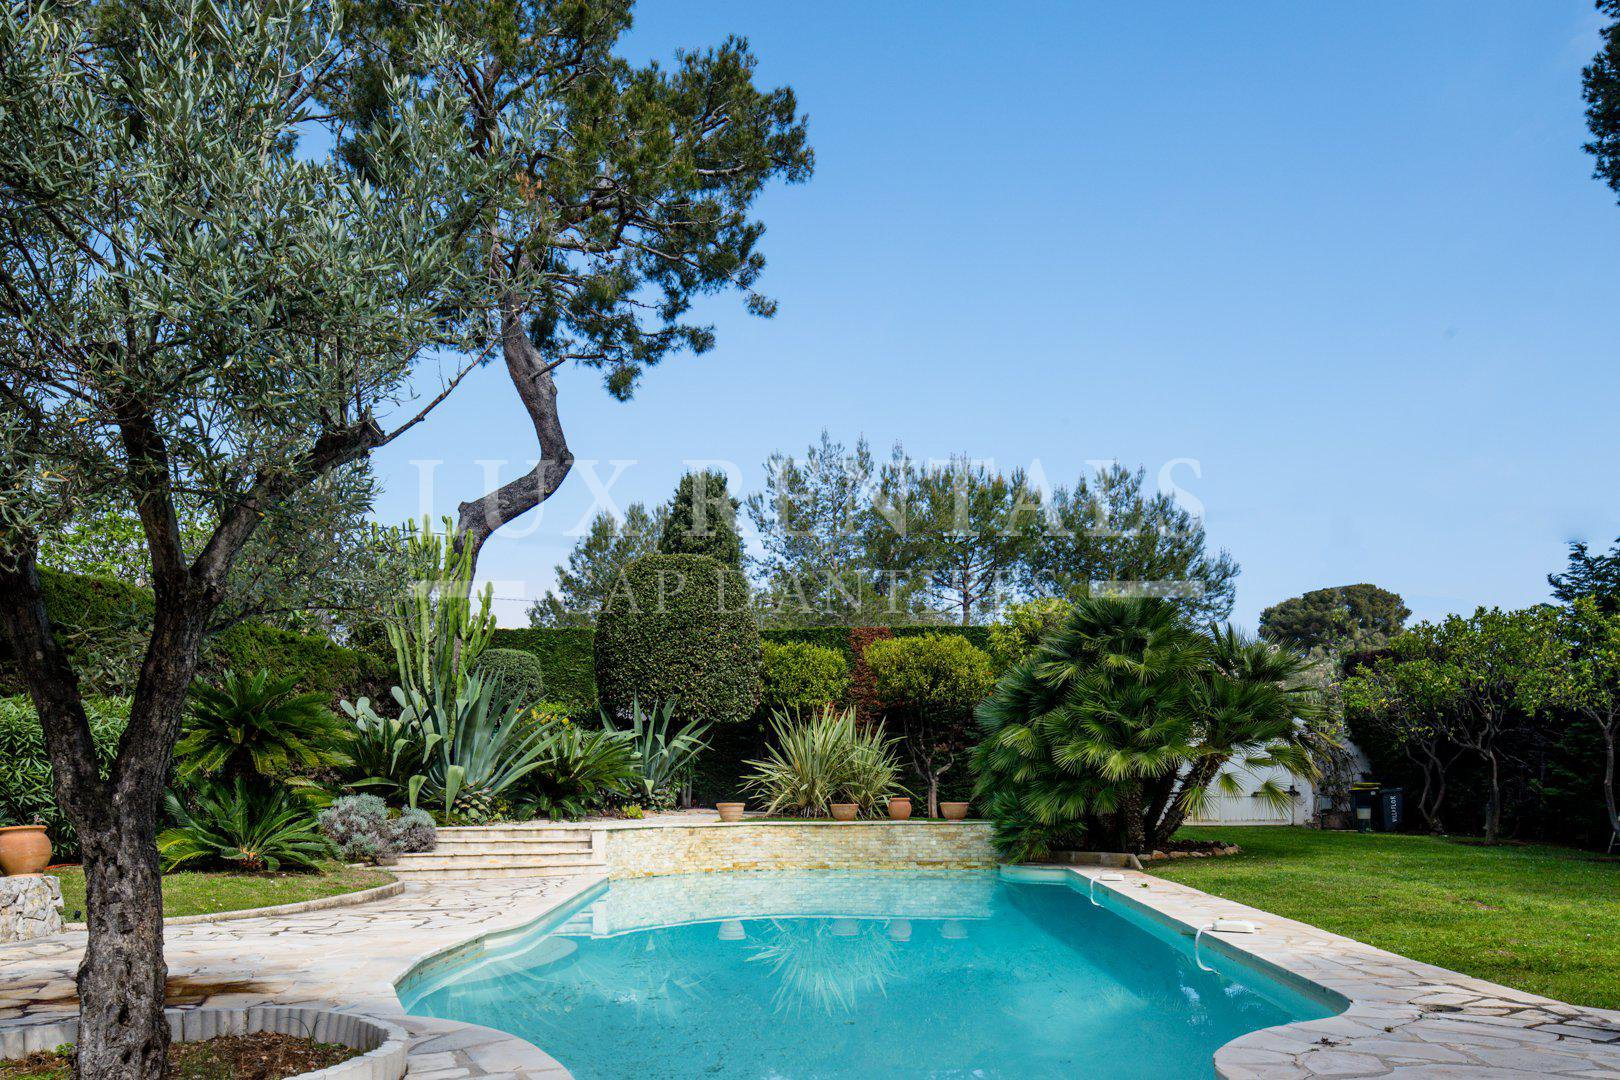 Thumbnail 2 Sale House - Cap d'Antibes